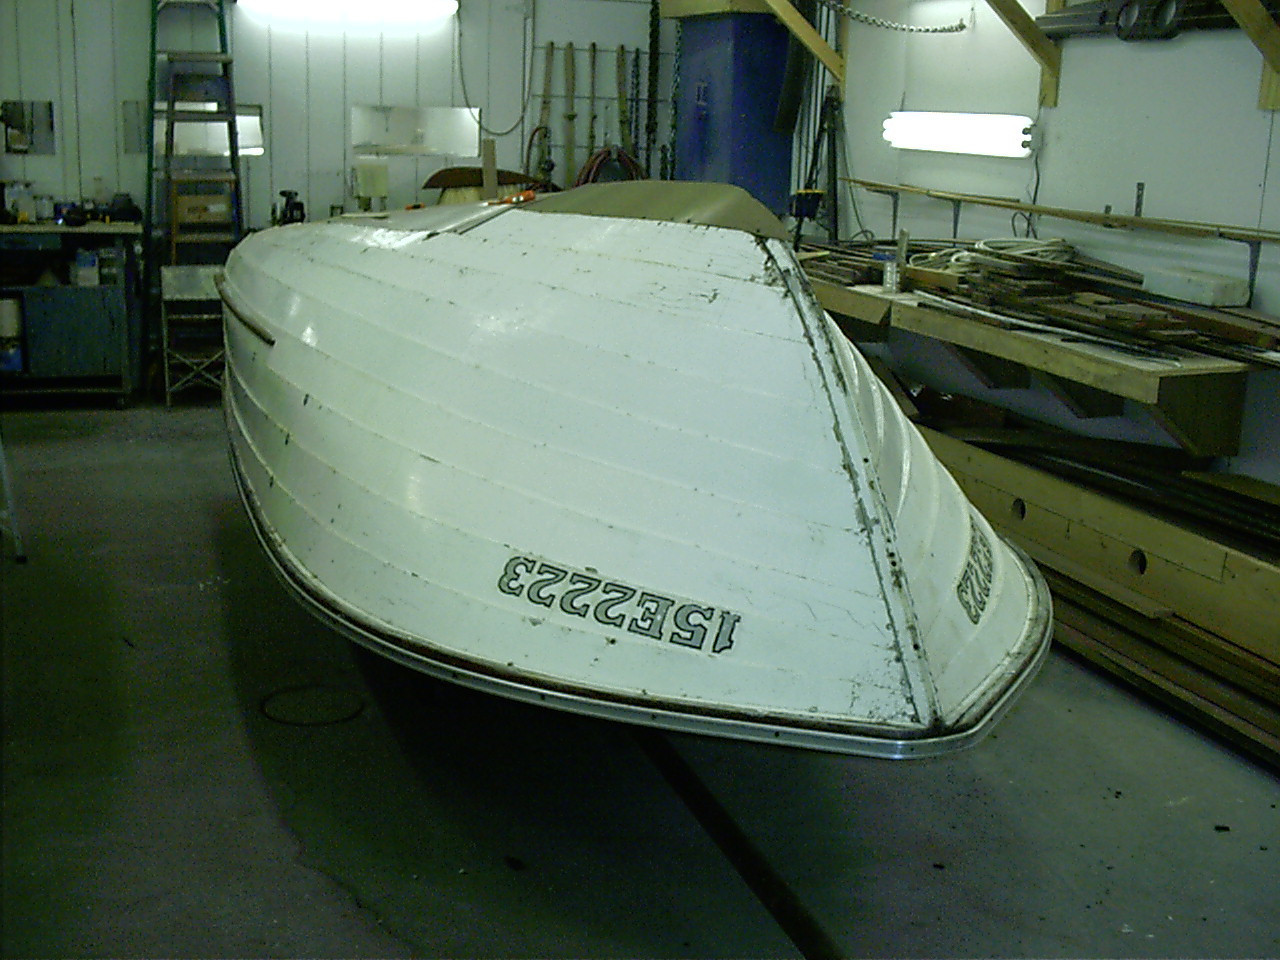 Front view of hull upside down.